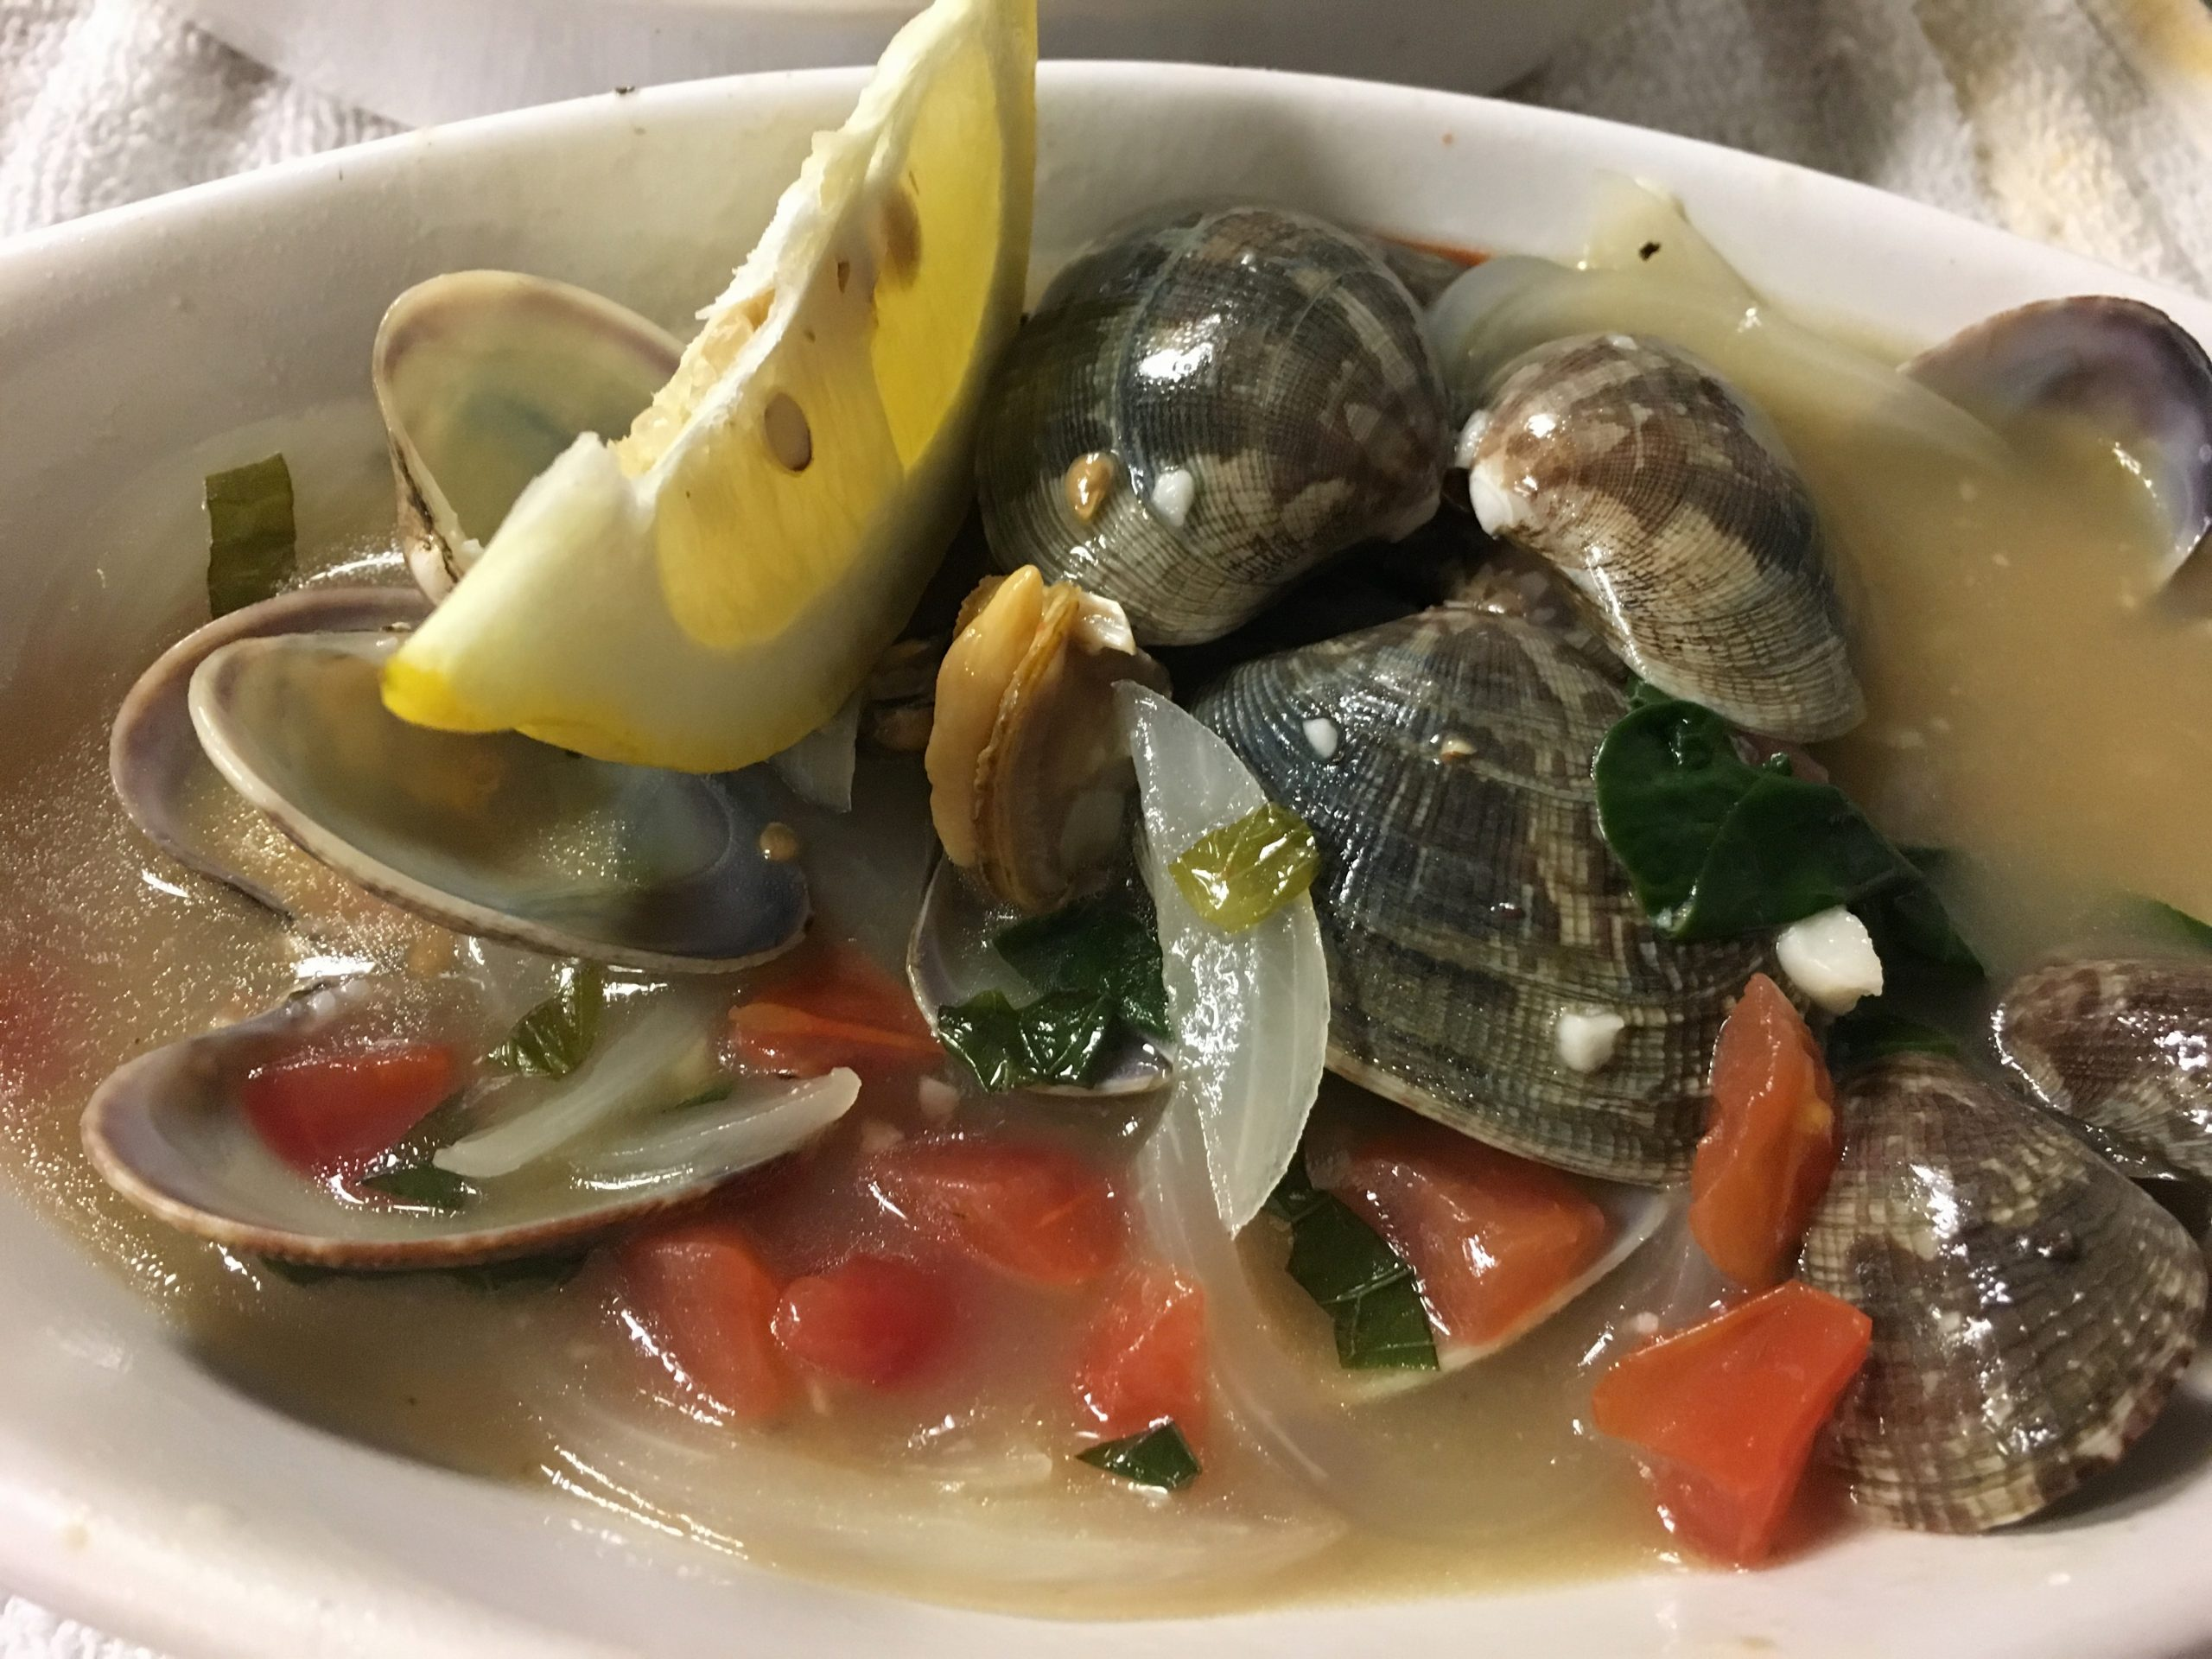 Appetizer: photo of Little Neck Clams in a white bowl. Little neck clams sautéed in garlic butter, white wine and fish fumé. Served with grilled bread.